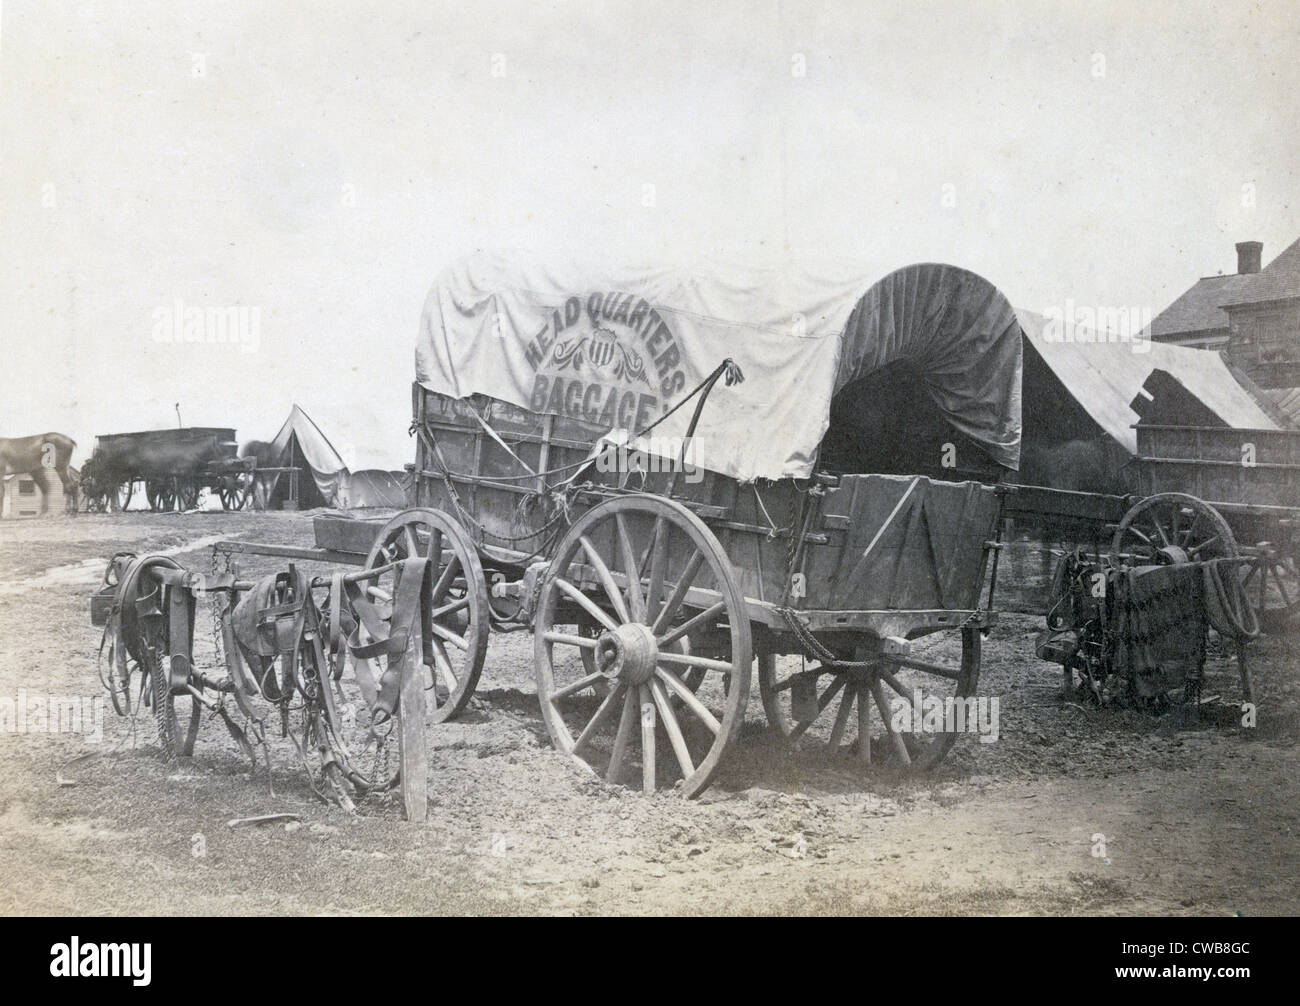 The Civil War. Covered wagon for 'Headquarters baggage' and saddlery. 1865 - Stock Image